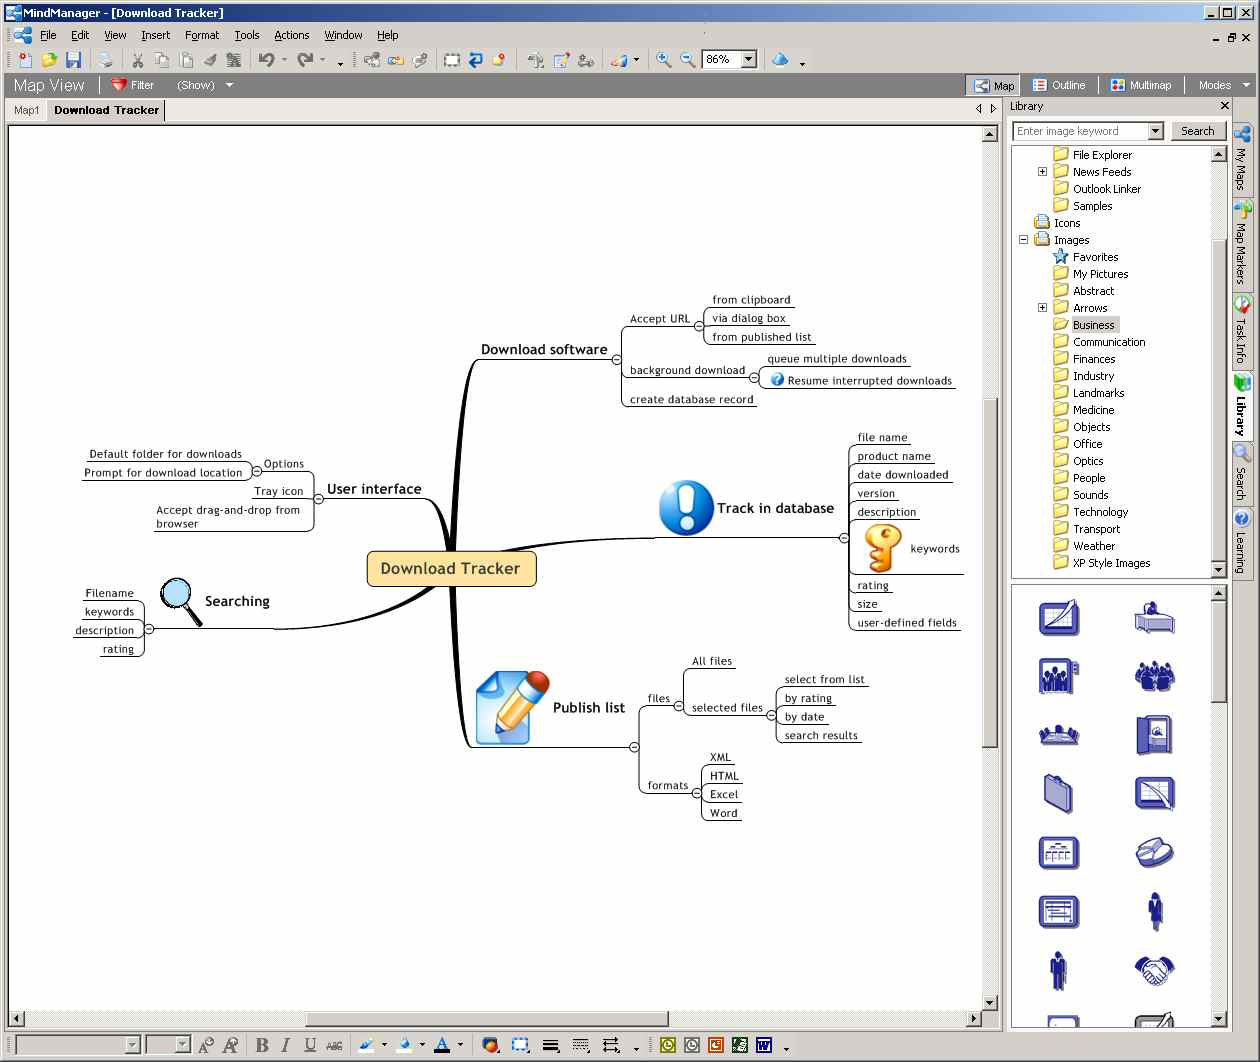 Download jcvgantt for mindmanager x5 v. 1. 0. 4 crack updated video.